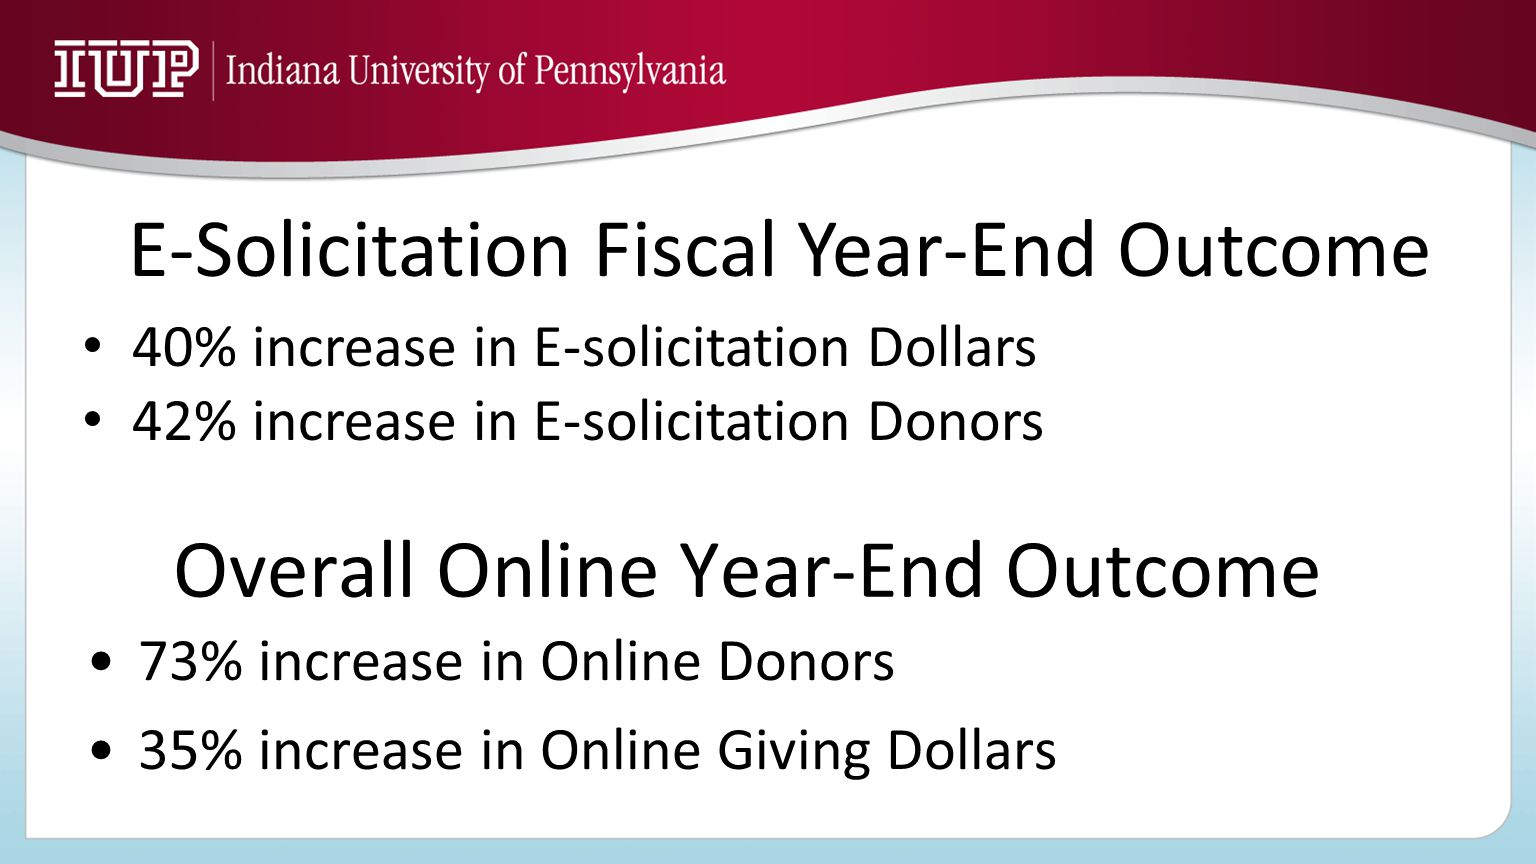 Overall Online Year-End Outcome 73% increase in Online Donors 35% increase in Online Giving Dollars E-Solicitation Fiscal Year-End Outcome 40% increas